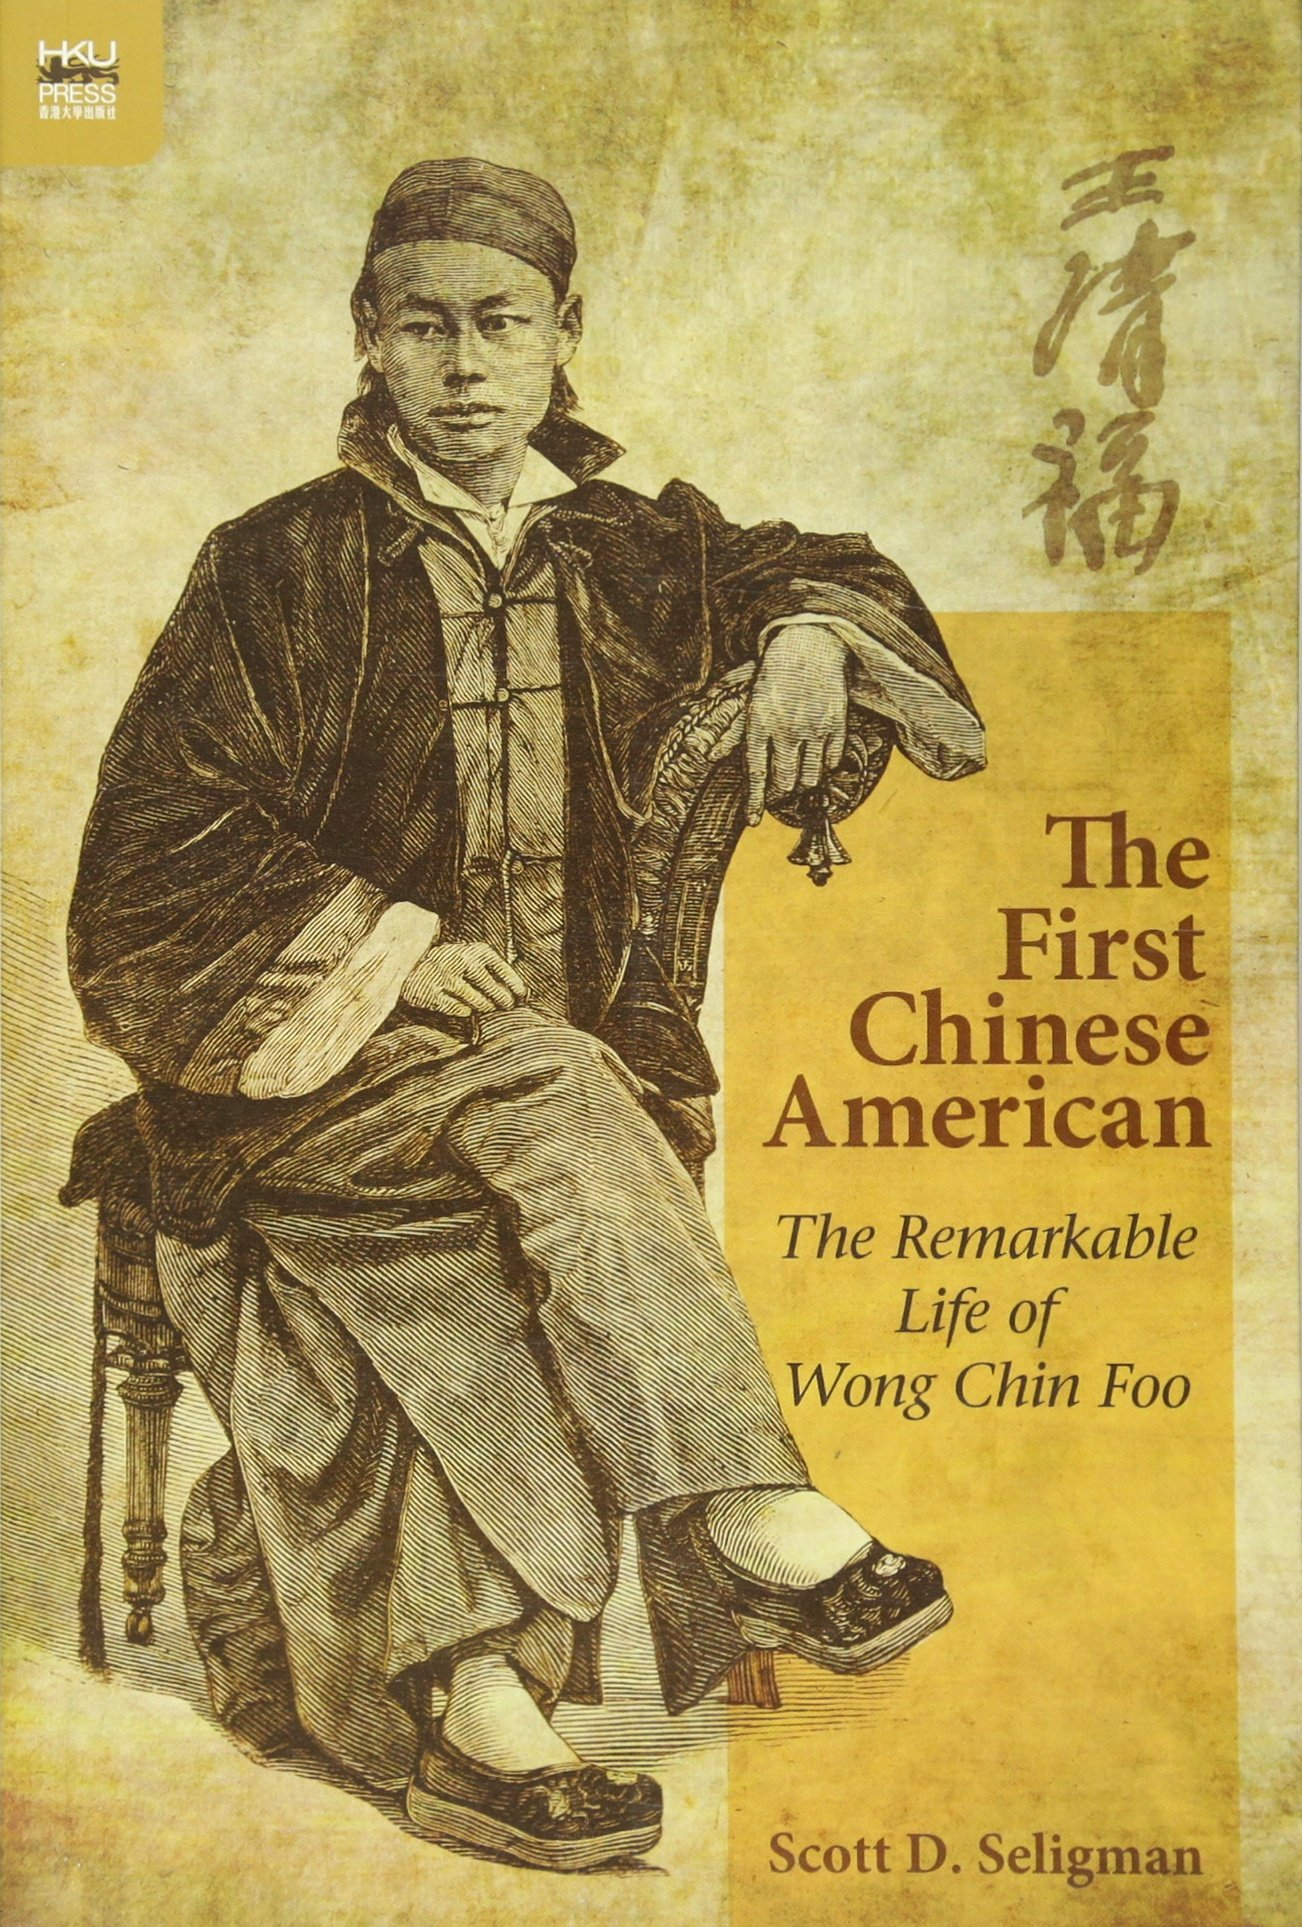 Download The First Chinese American: The Remarkable Life of Wong Chin Foo PDF